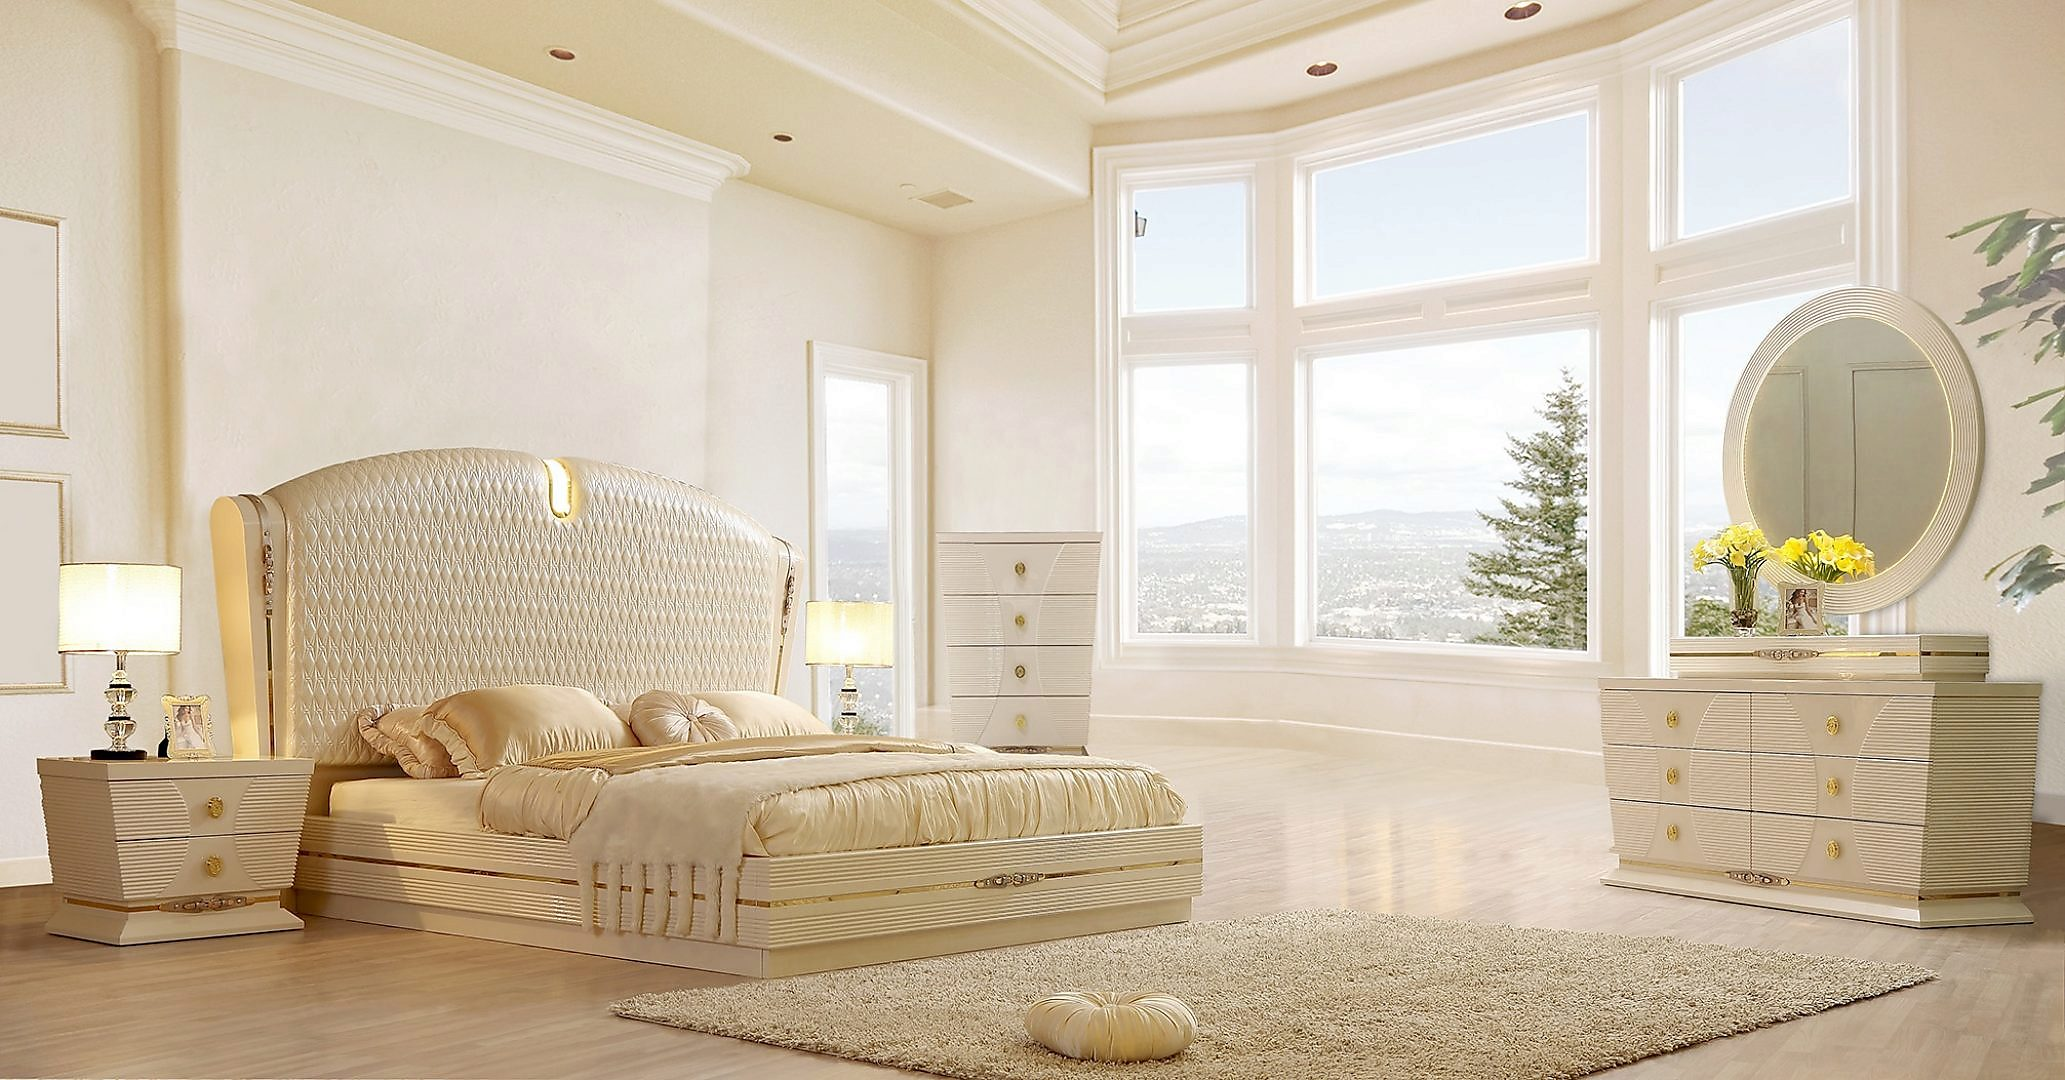 Traditional California King Bedroom Set 5 PCS in White Leather Traditional Style Homey Design HD-914